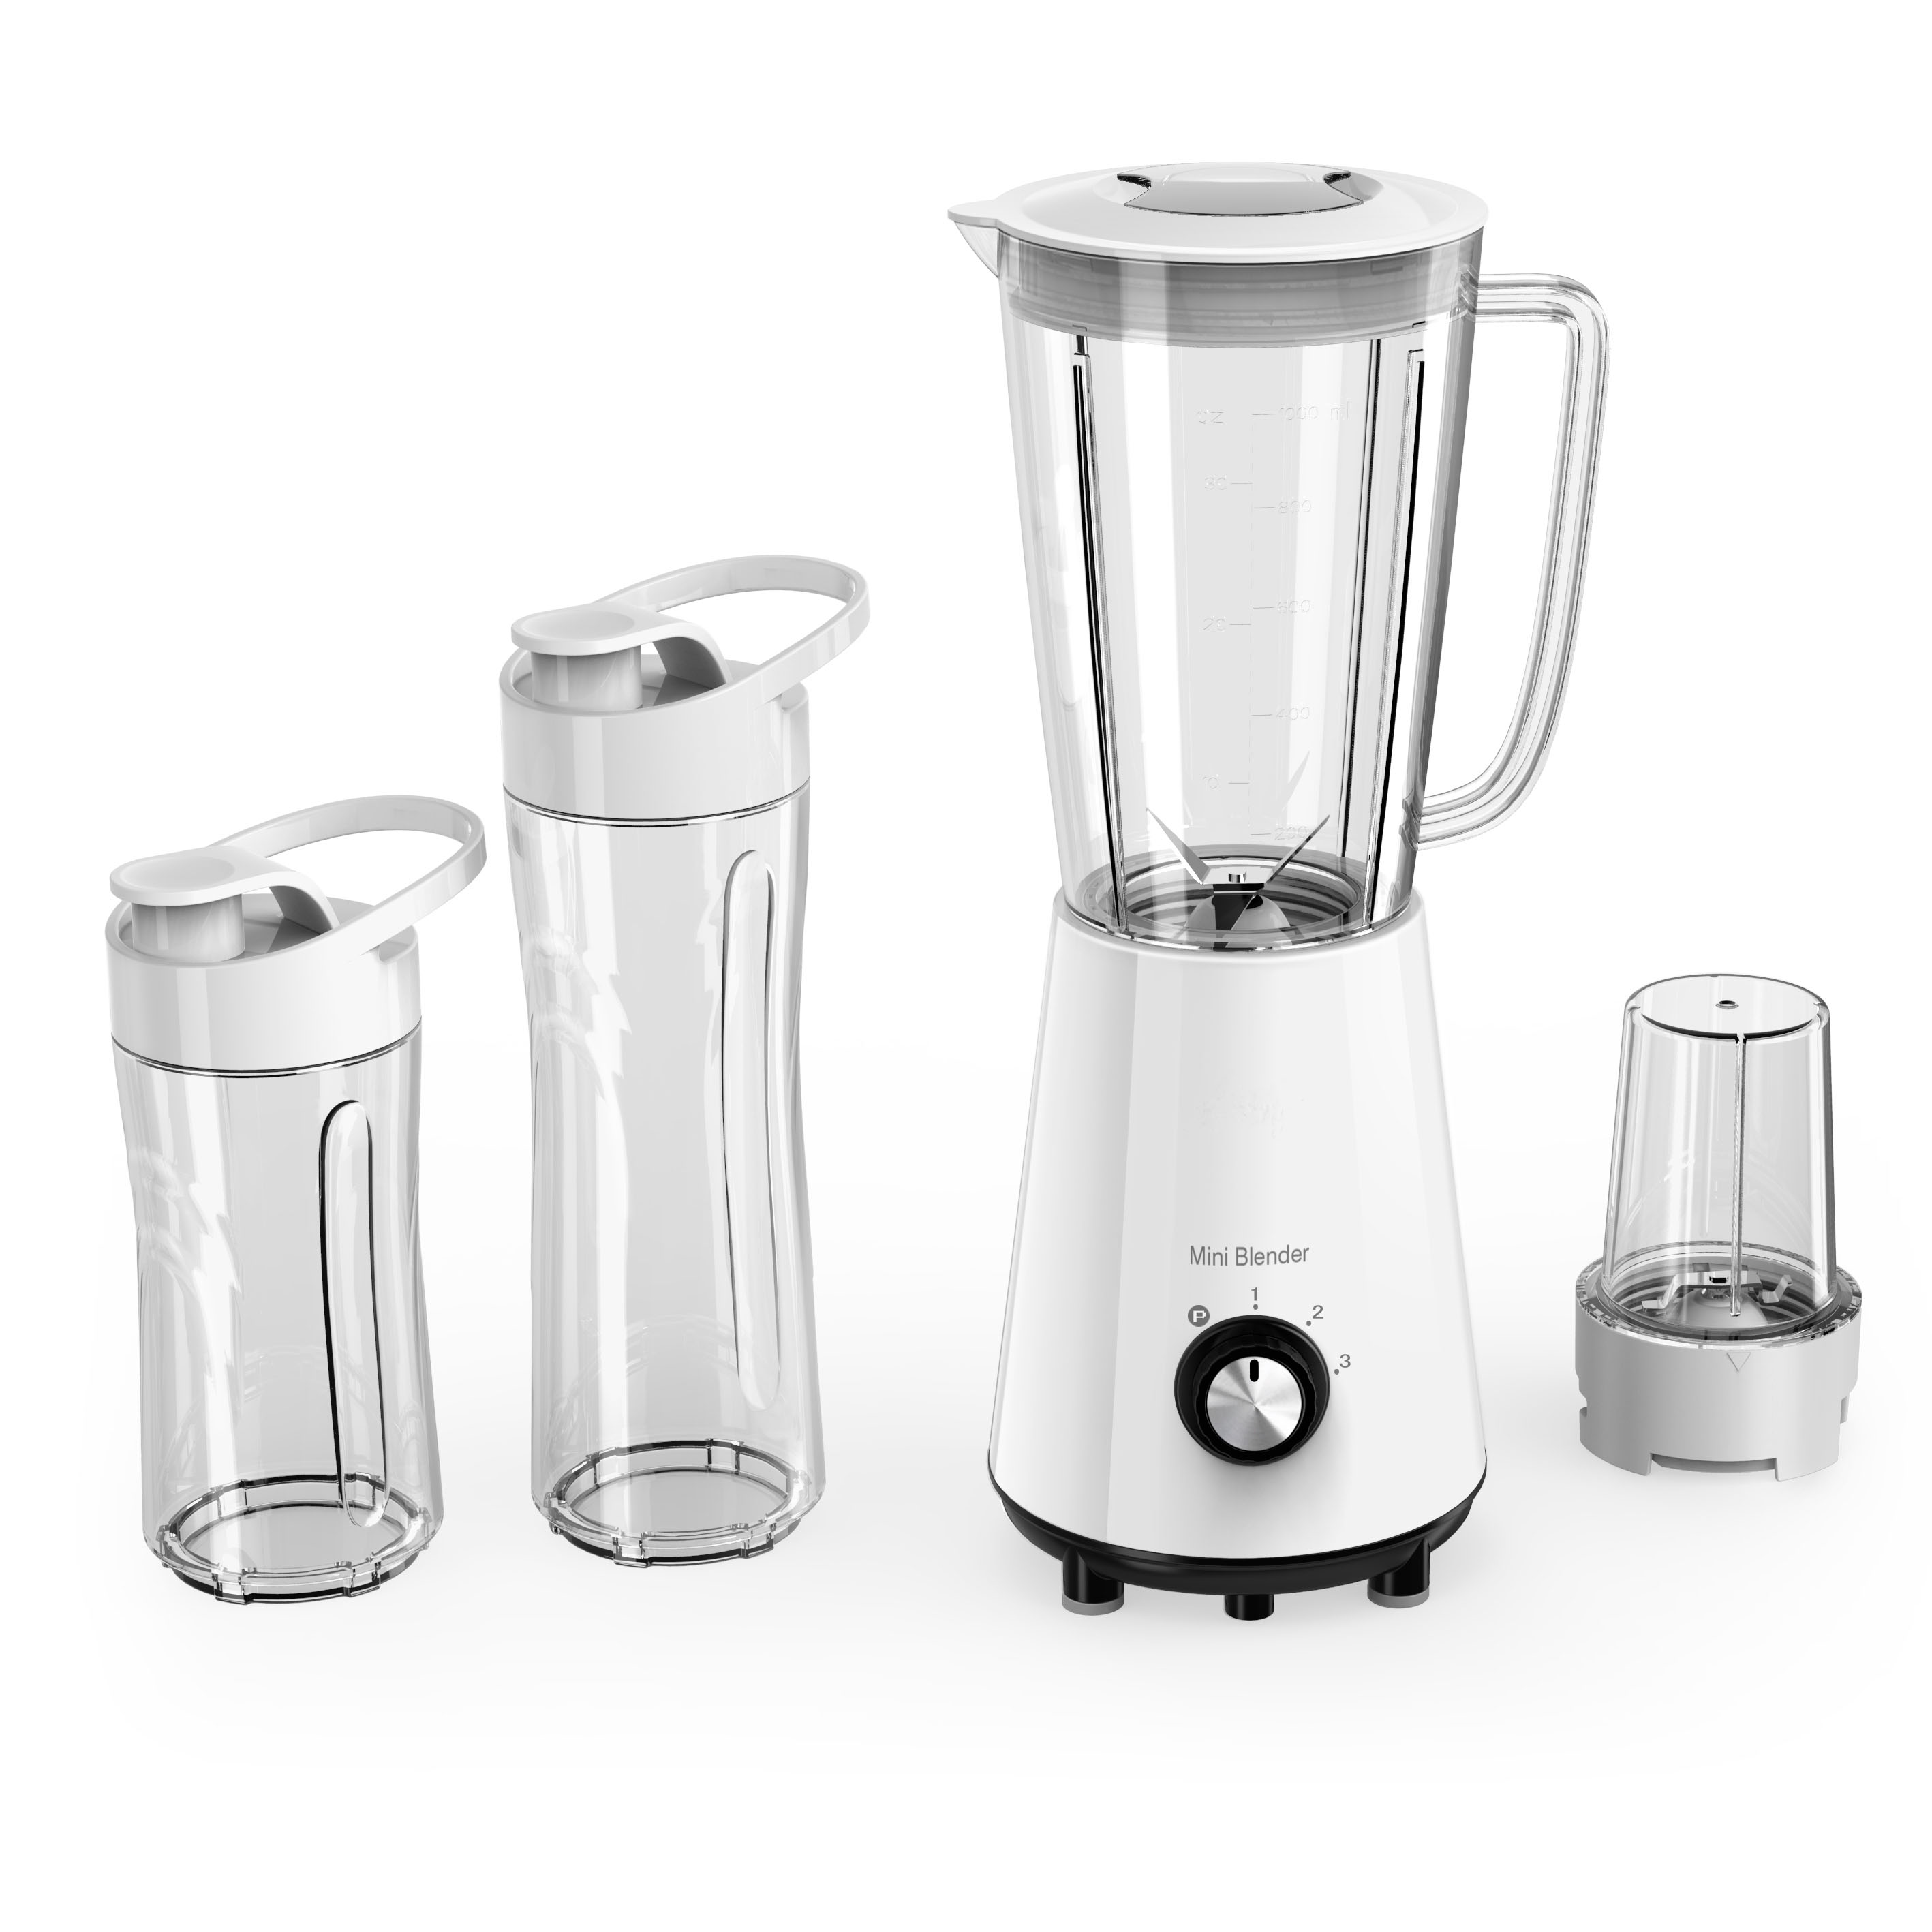 AM-1383A Table/stand blender